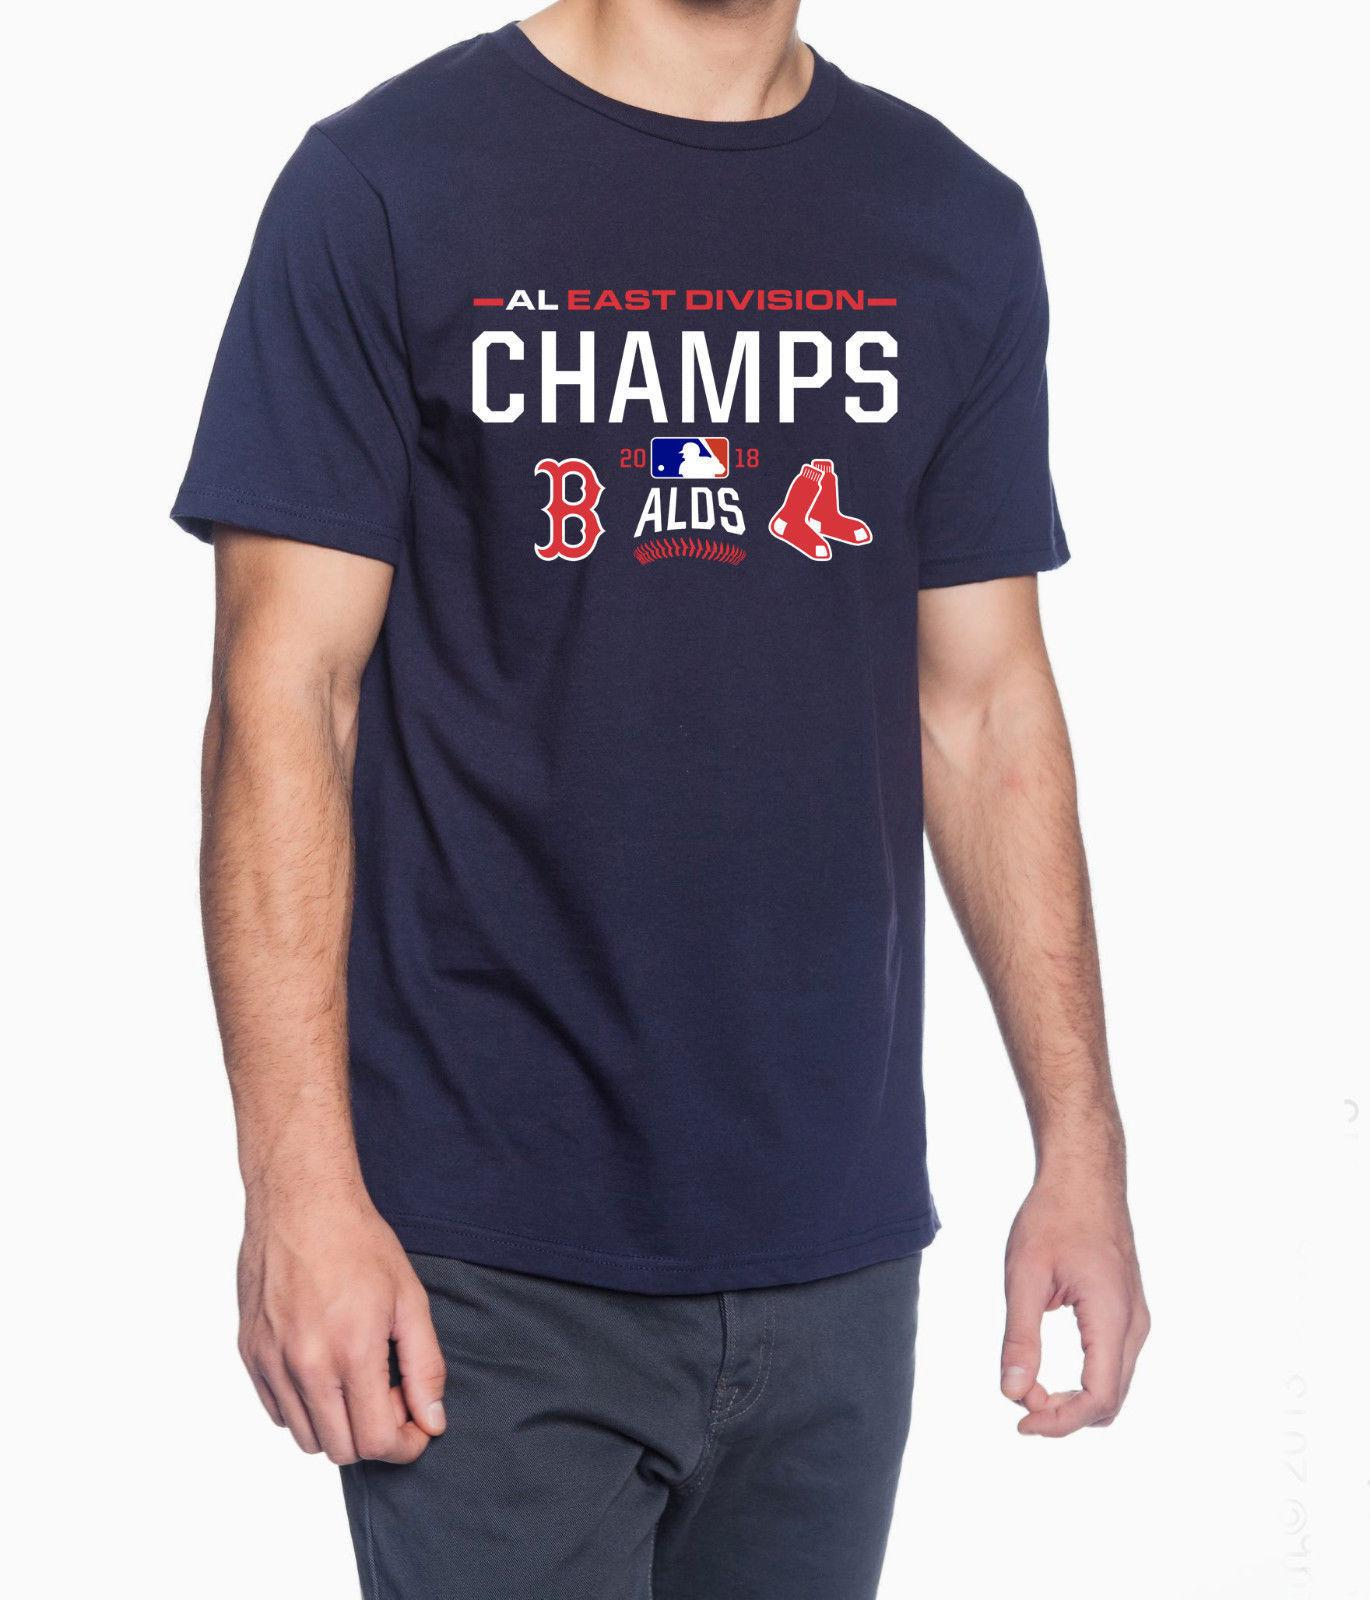 e2c6fa8ab7d Boston Red Sox AL East 2018 Champions MLB Jersey Style Men S Graphic T Shirt  Cool Casual Pride T Shirt Men Awesome Tee Shirt Designs T Shirts Awesome  From ...